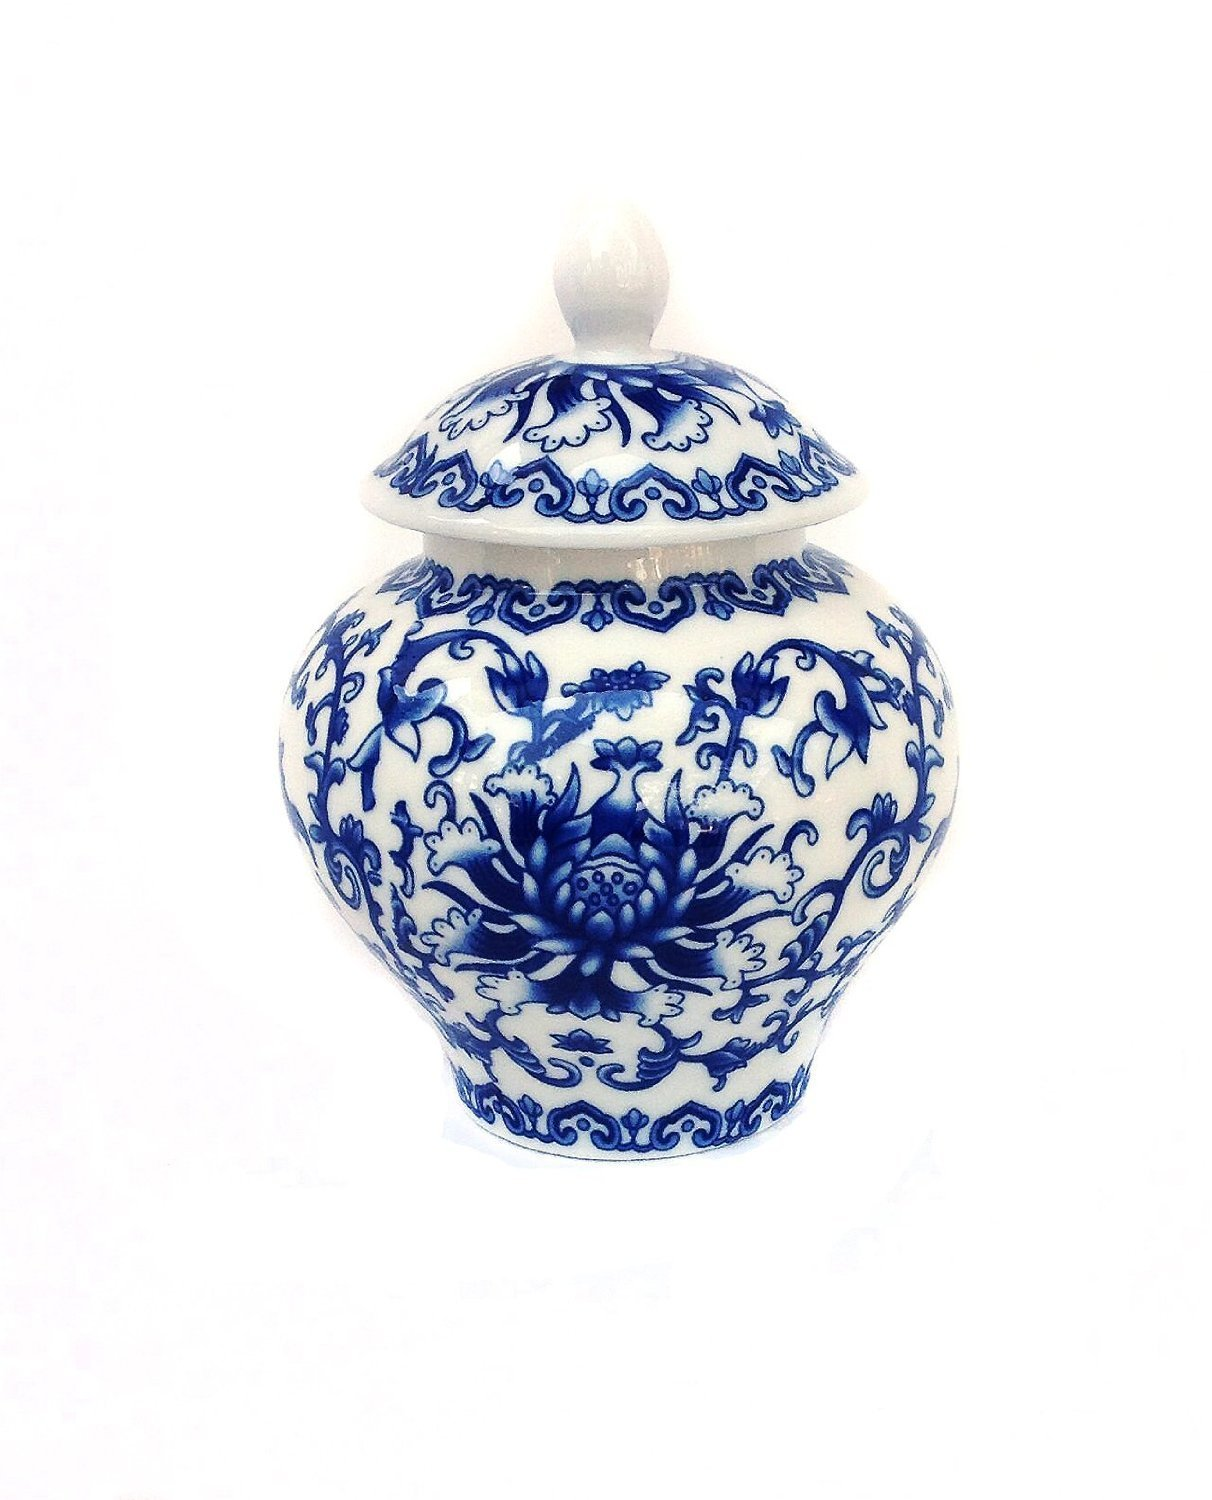 Ancient Chinese Style Blue and White Porcelain Tea Storage Helmet-shaped Temple Jar (Small size) U.S.Sourcing Inc. GW-CBW110